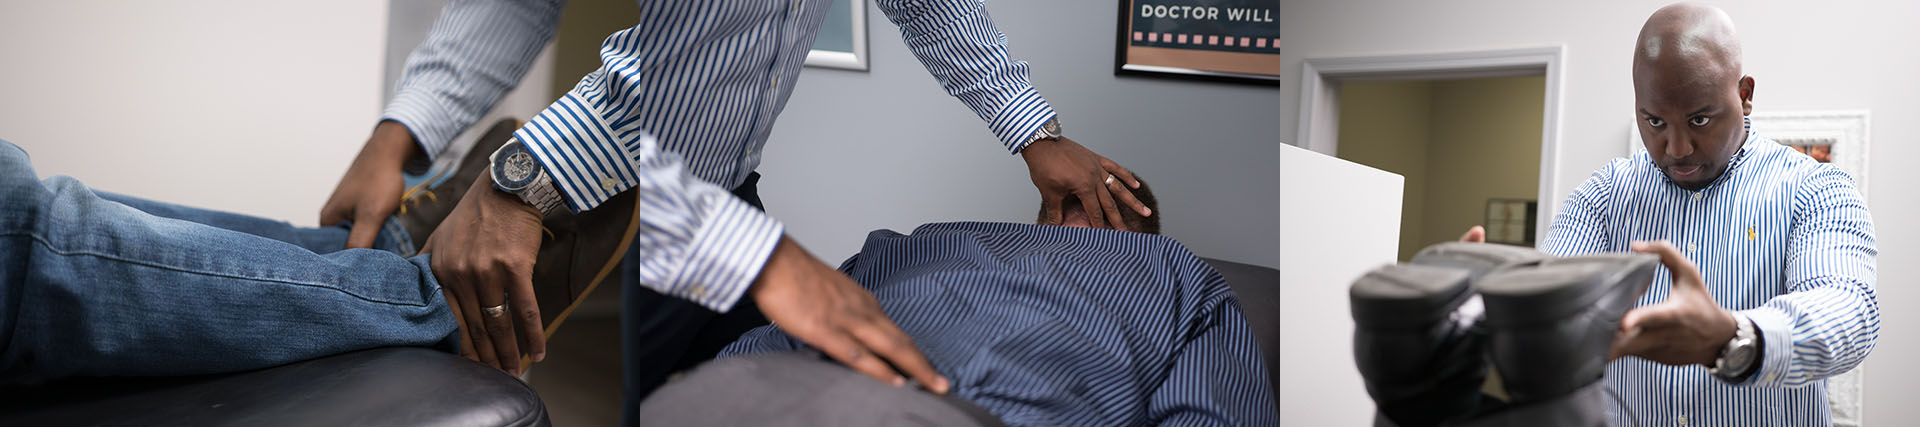 Our Chiropractic Technique at Vital Life Chiropractic